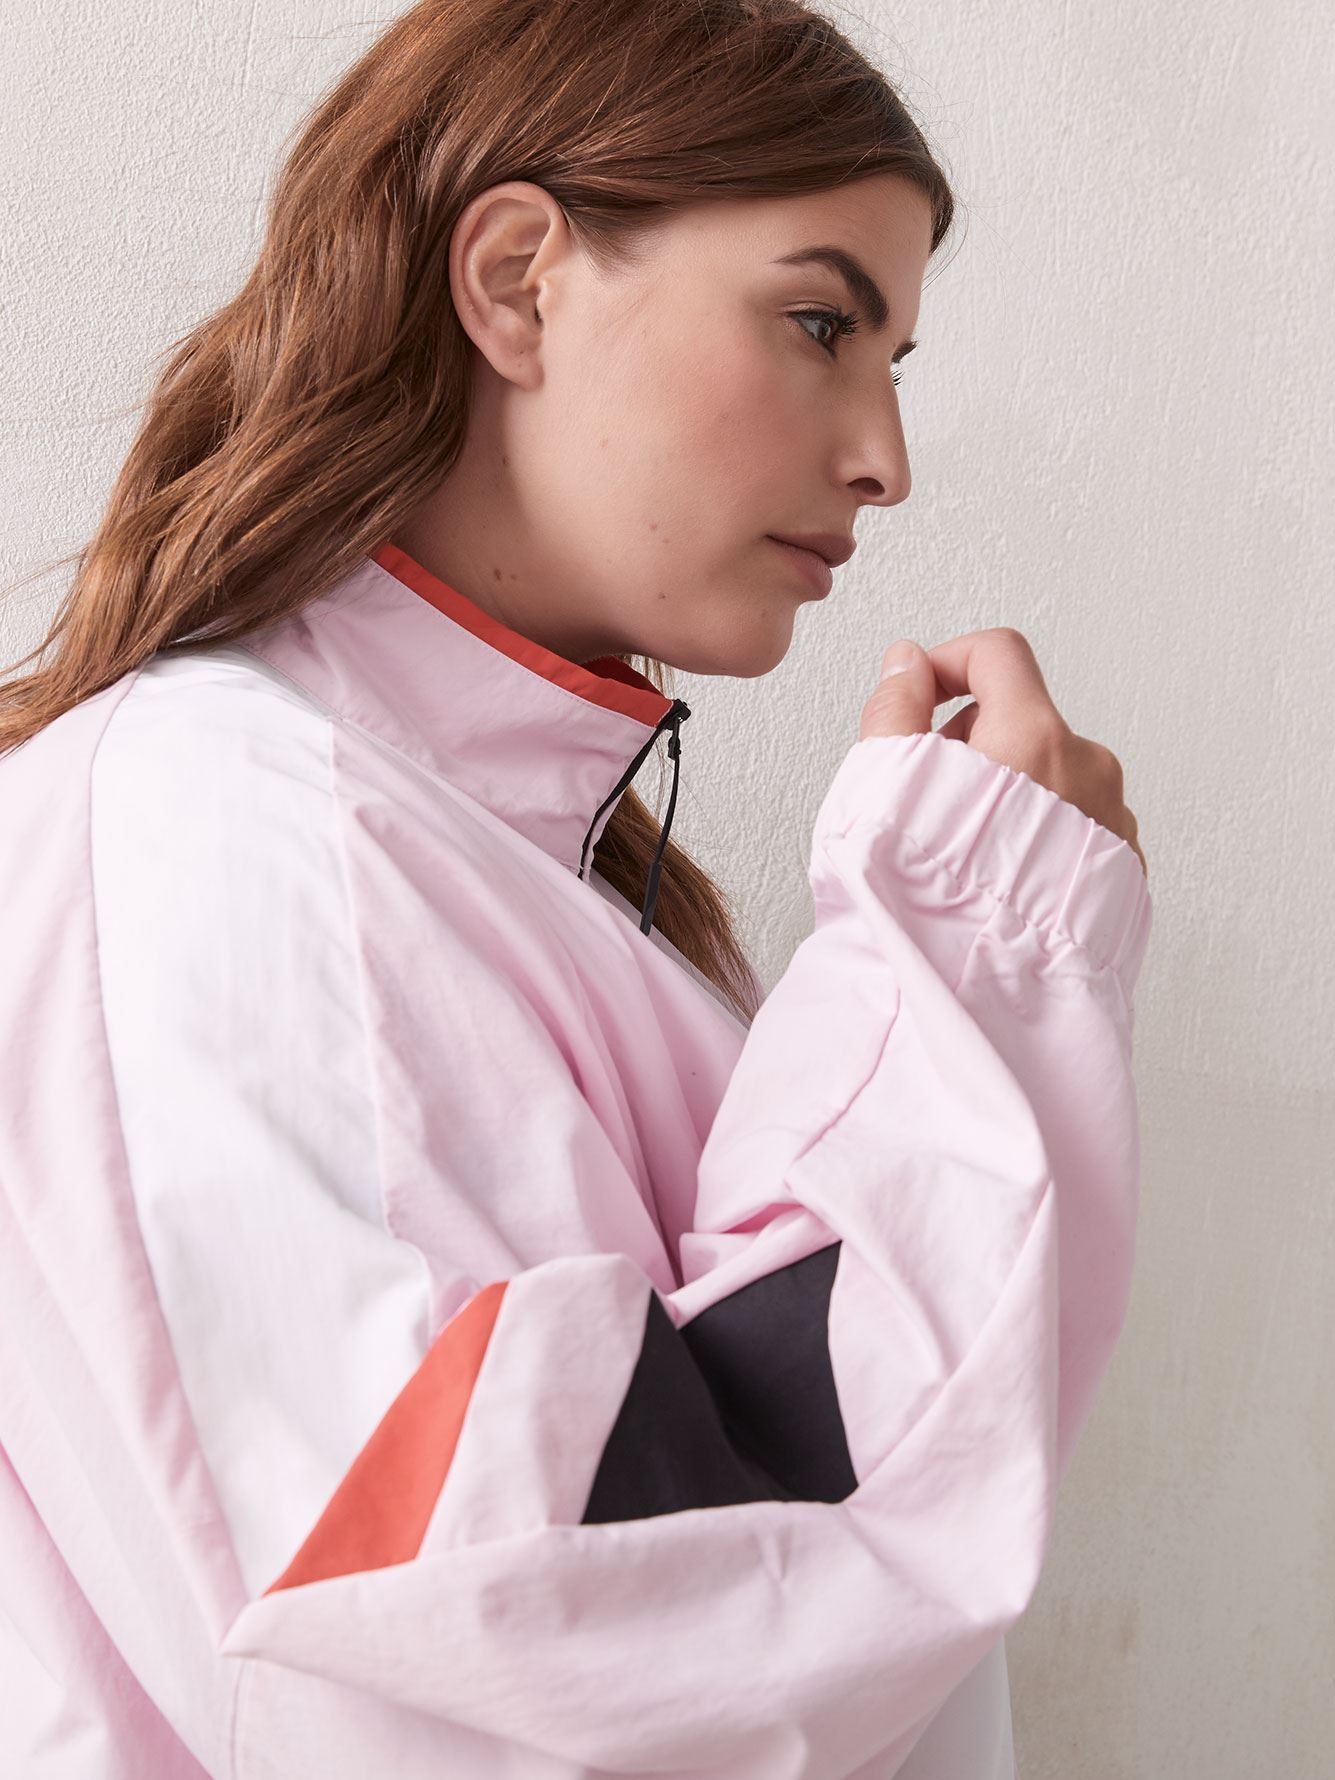 Meet You There Track Jacket - Reebok